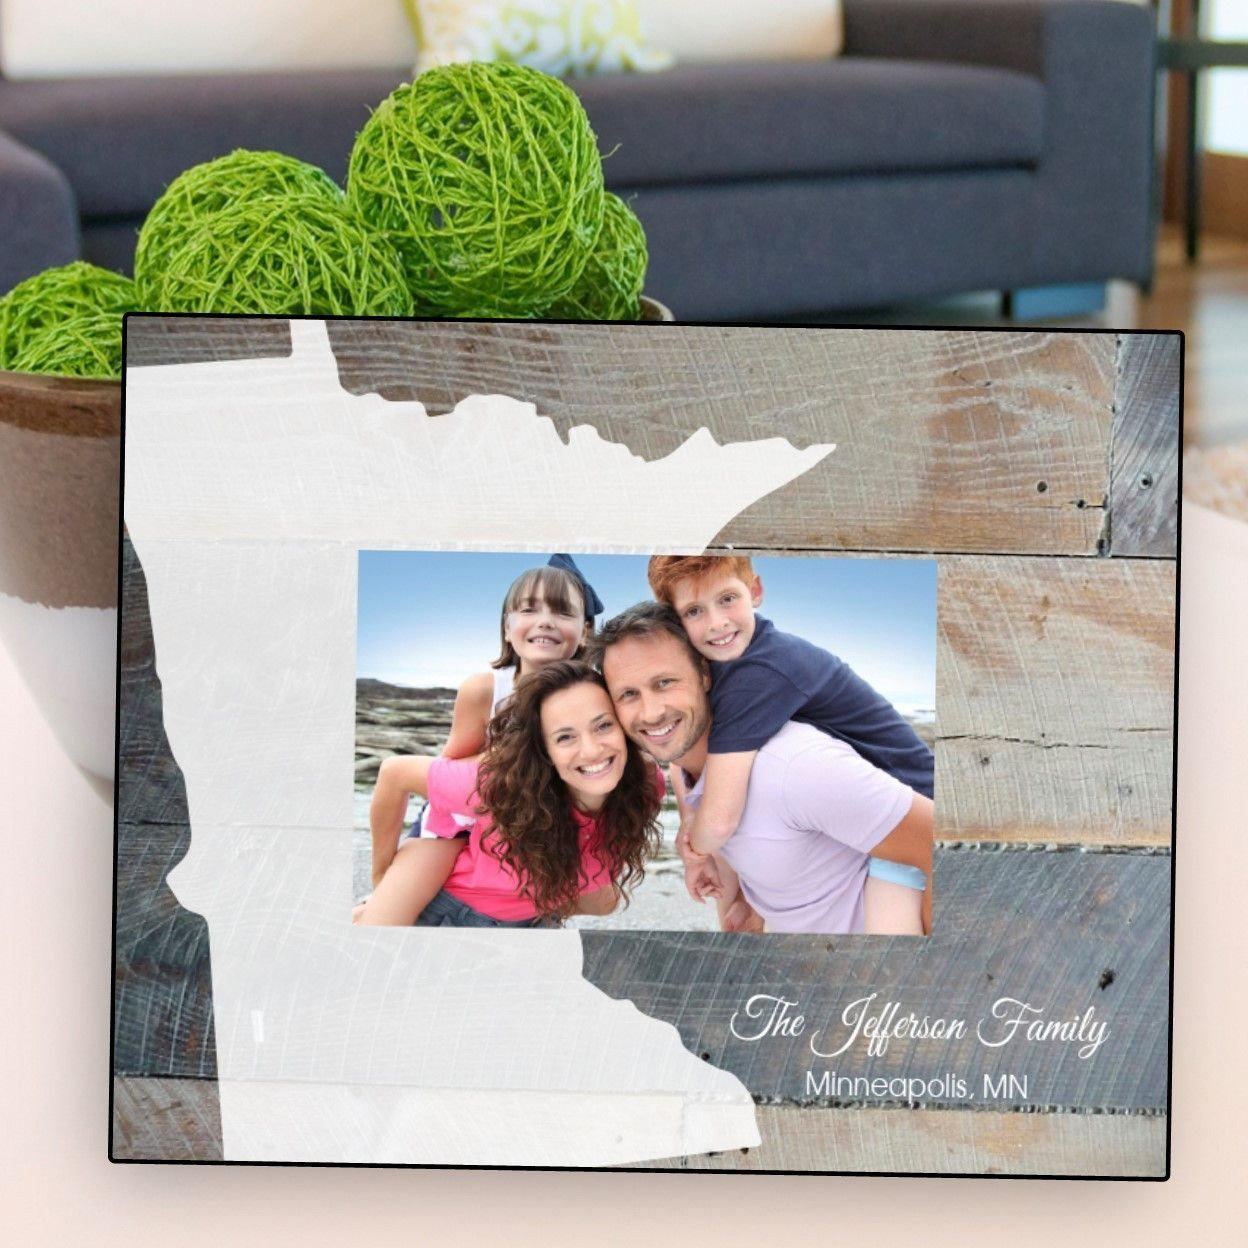 Personalized-Picture-Frames-Souvenir-Home-State-Frame-Birthday-Gifts